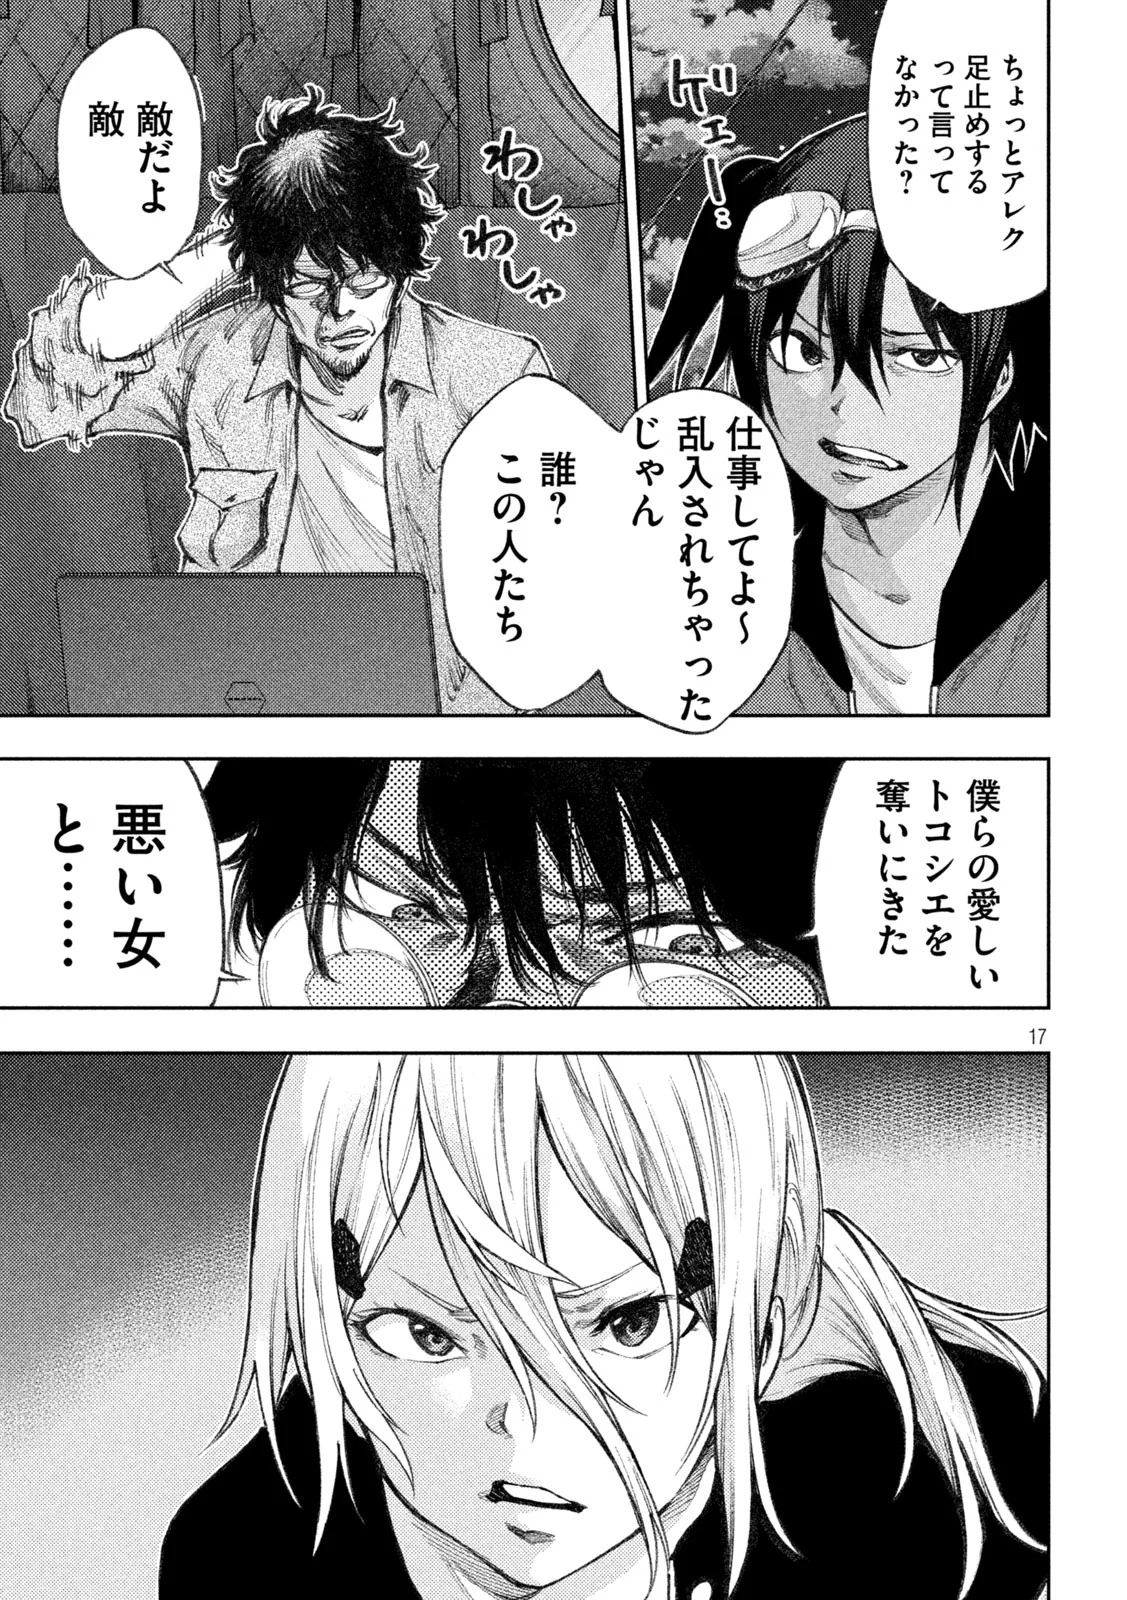 Manga Raw Tokoshie x Bullet - The Battle at Shin Minato Chapter 10